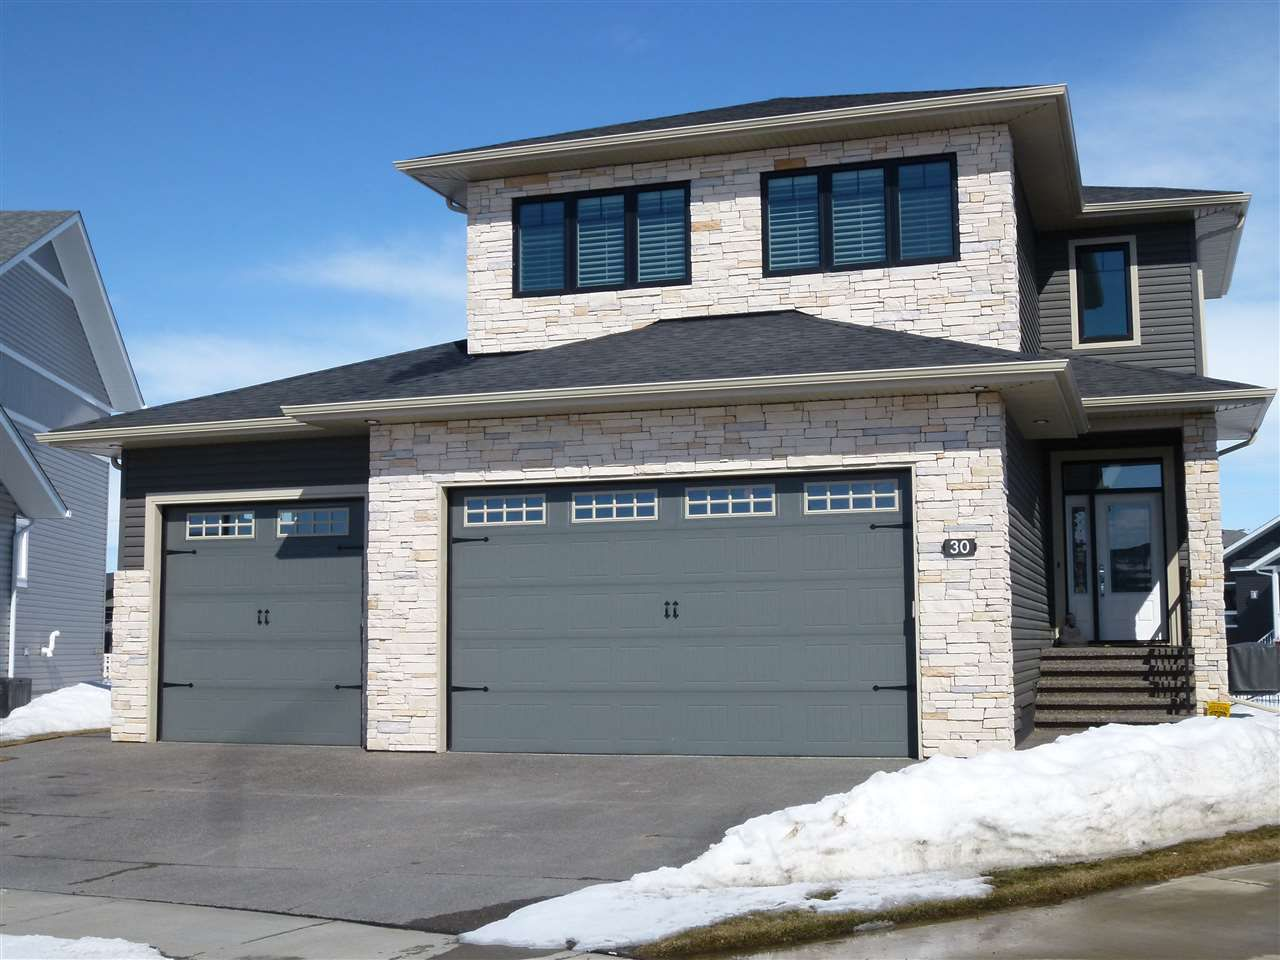 Main Photo: 30 Victory Close: Red Deer House for sale : MLS®# E4139405